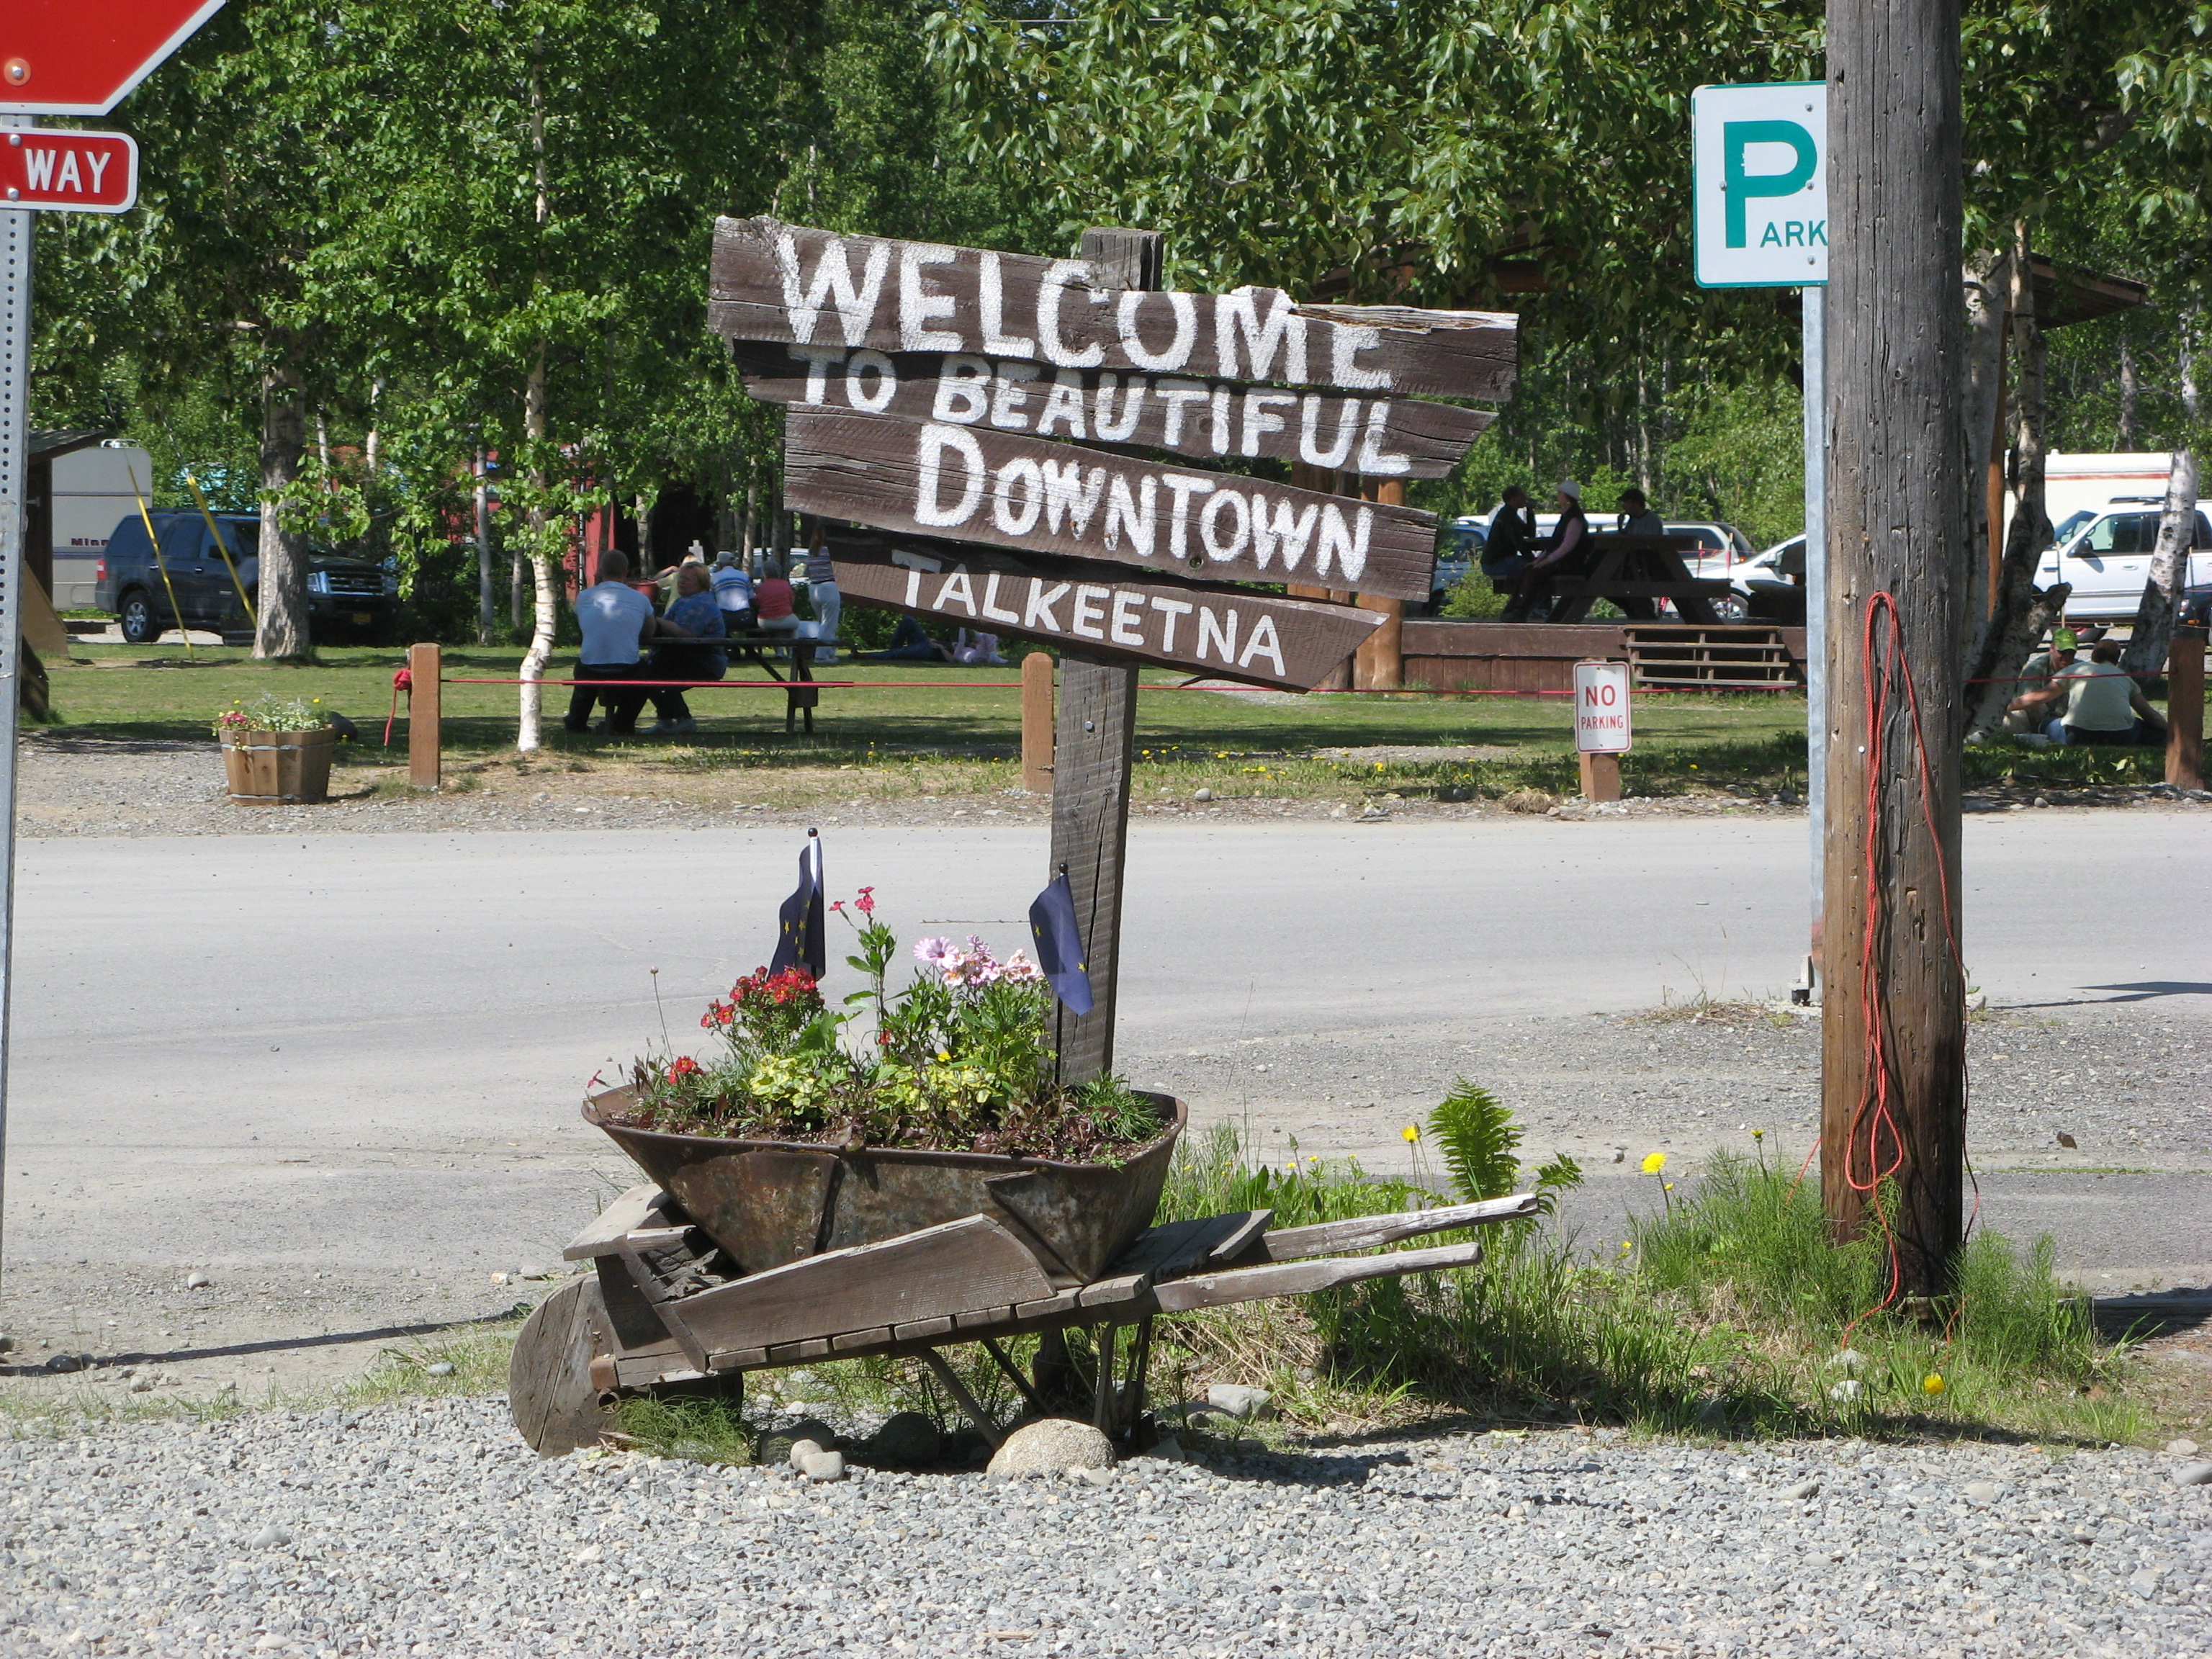 Talkeetna Welcome sign.